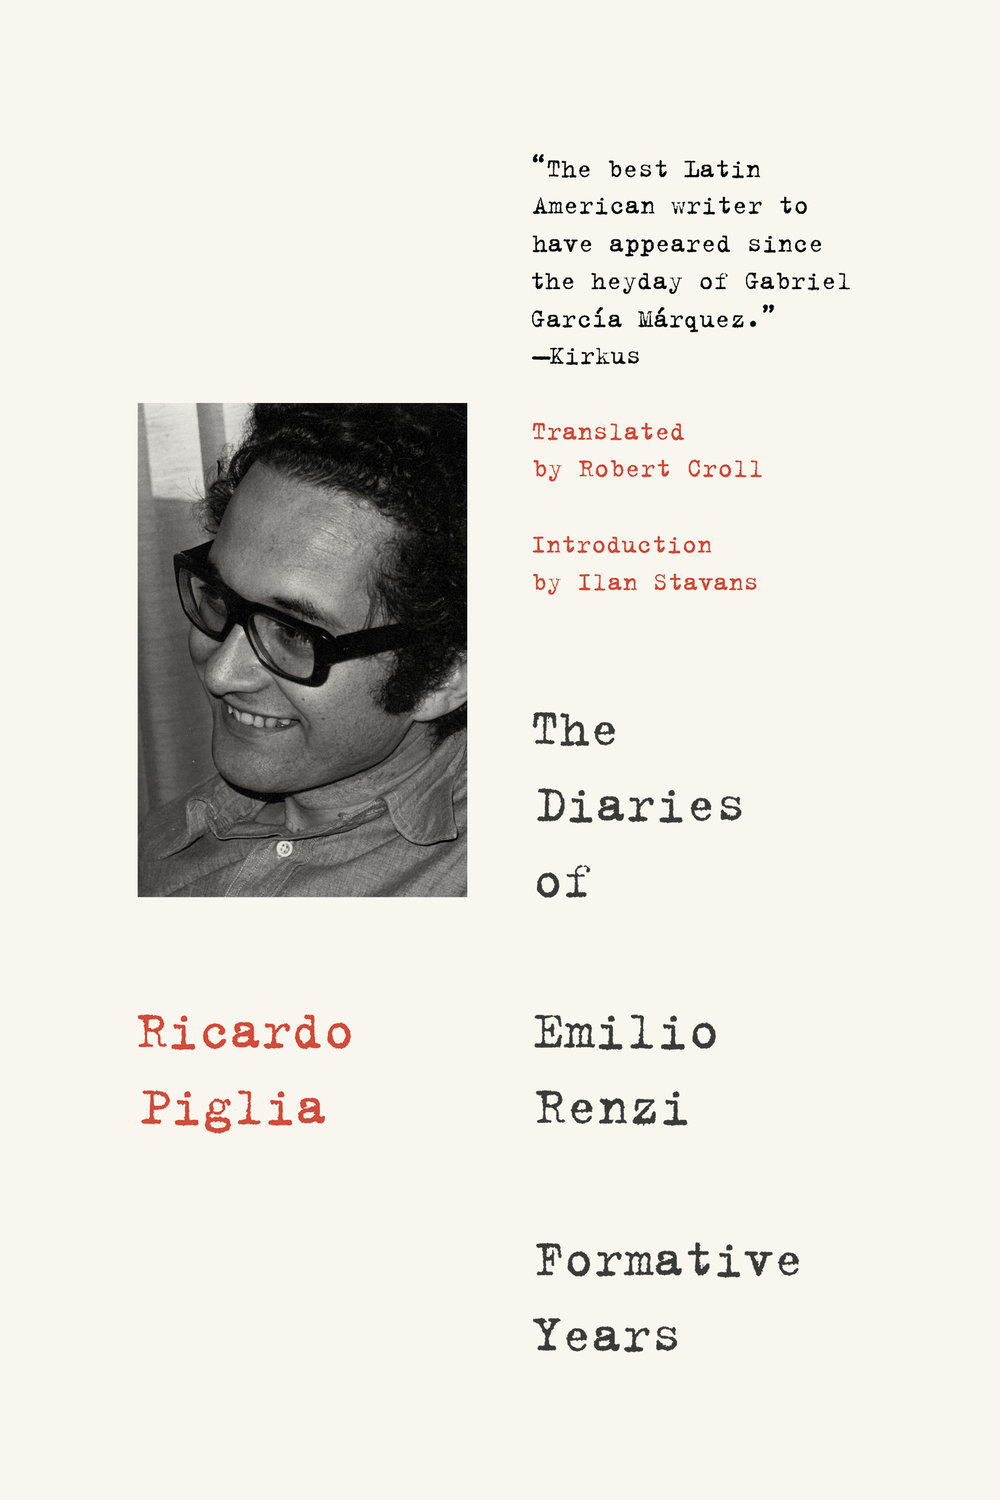 Ricardo Piglia-The Diaries of Emilio Renzi